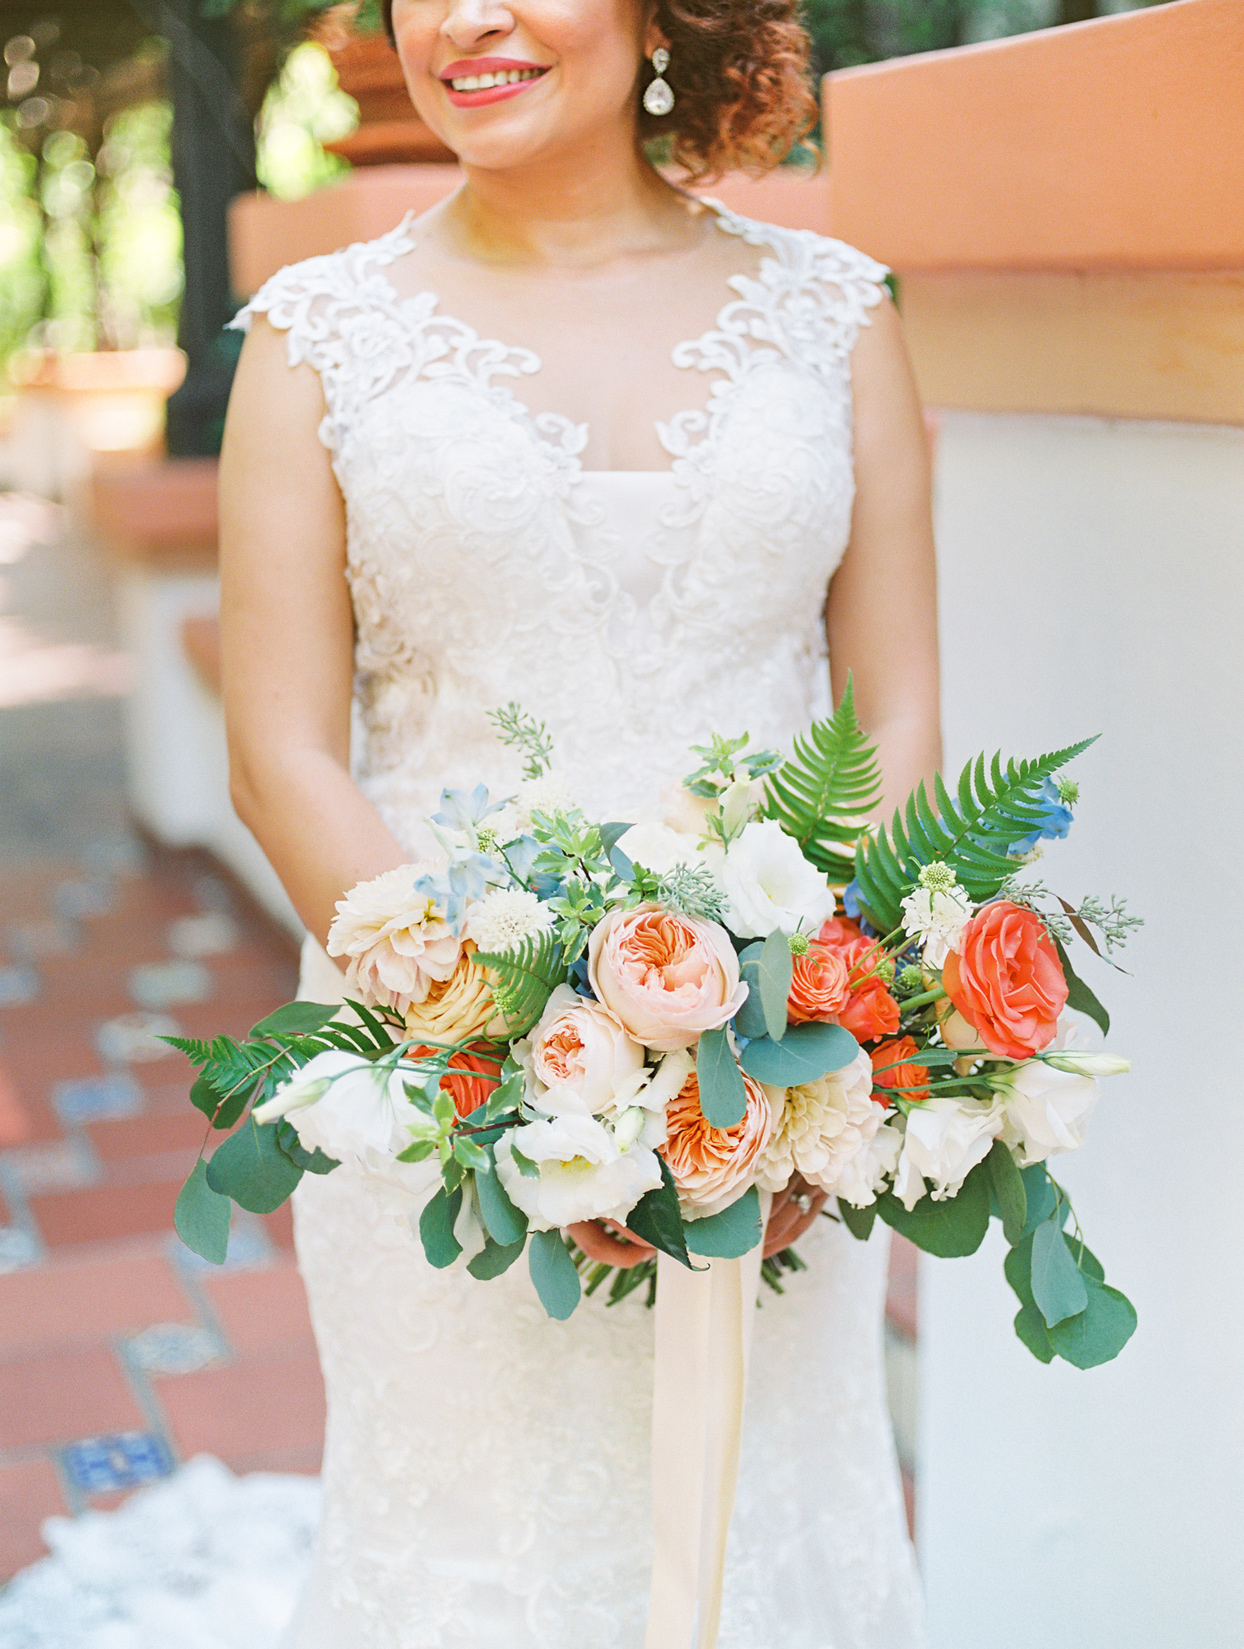 bride smiling holding garden-style oblong bouquet